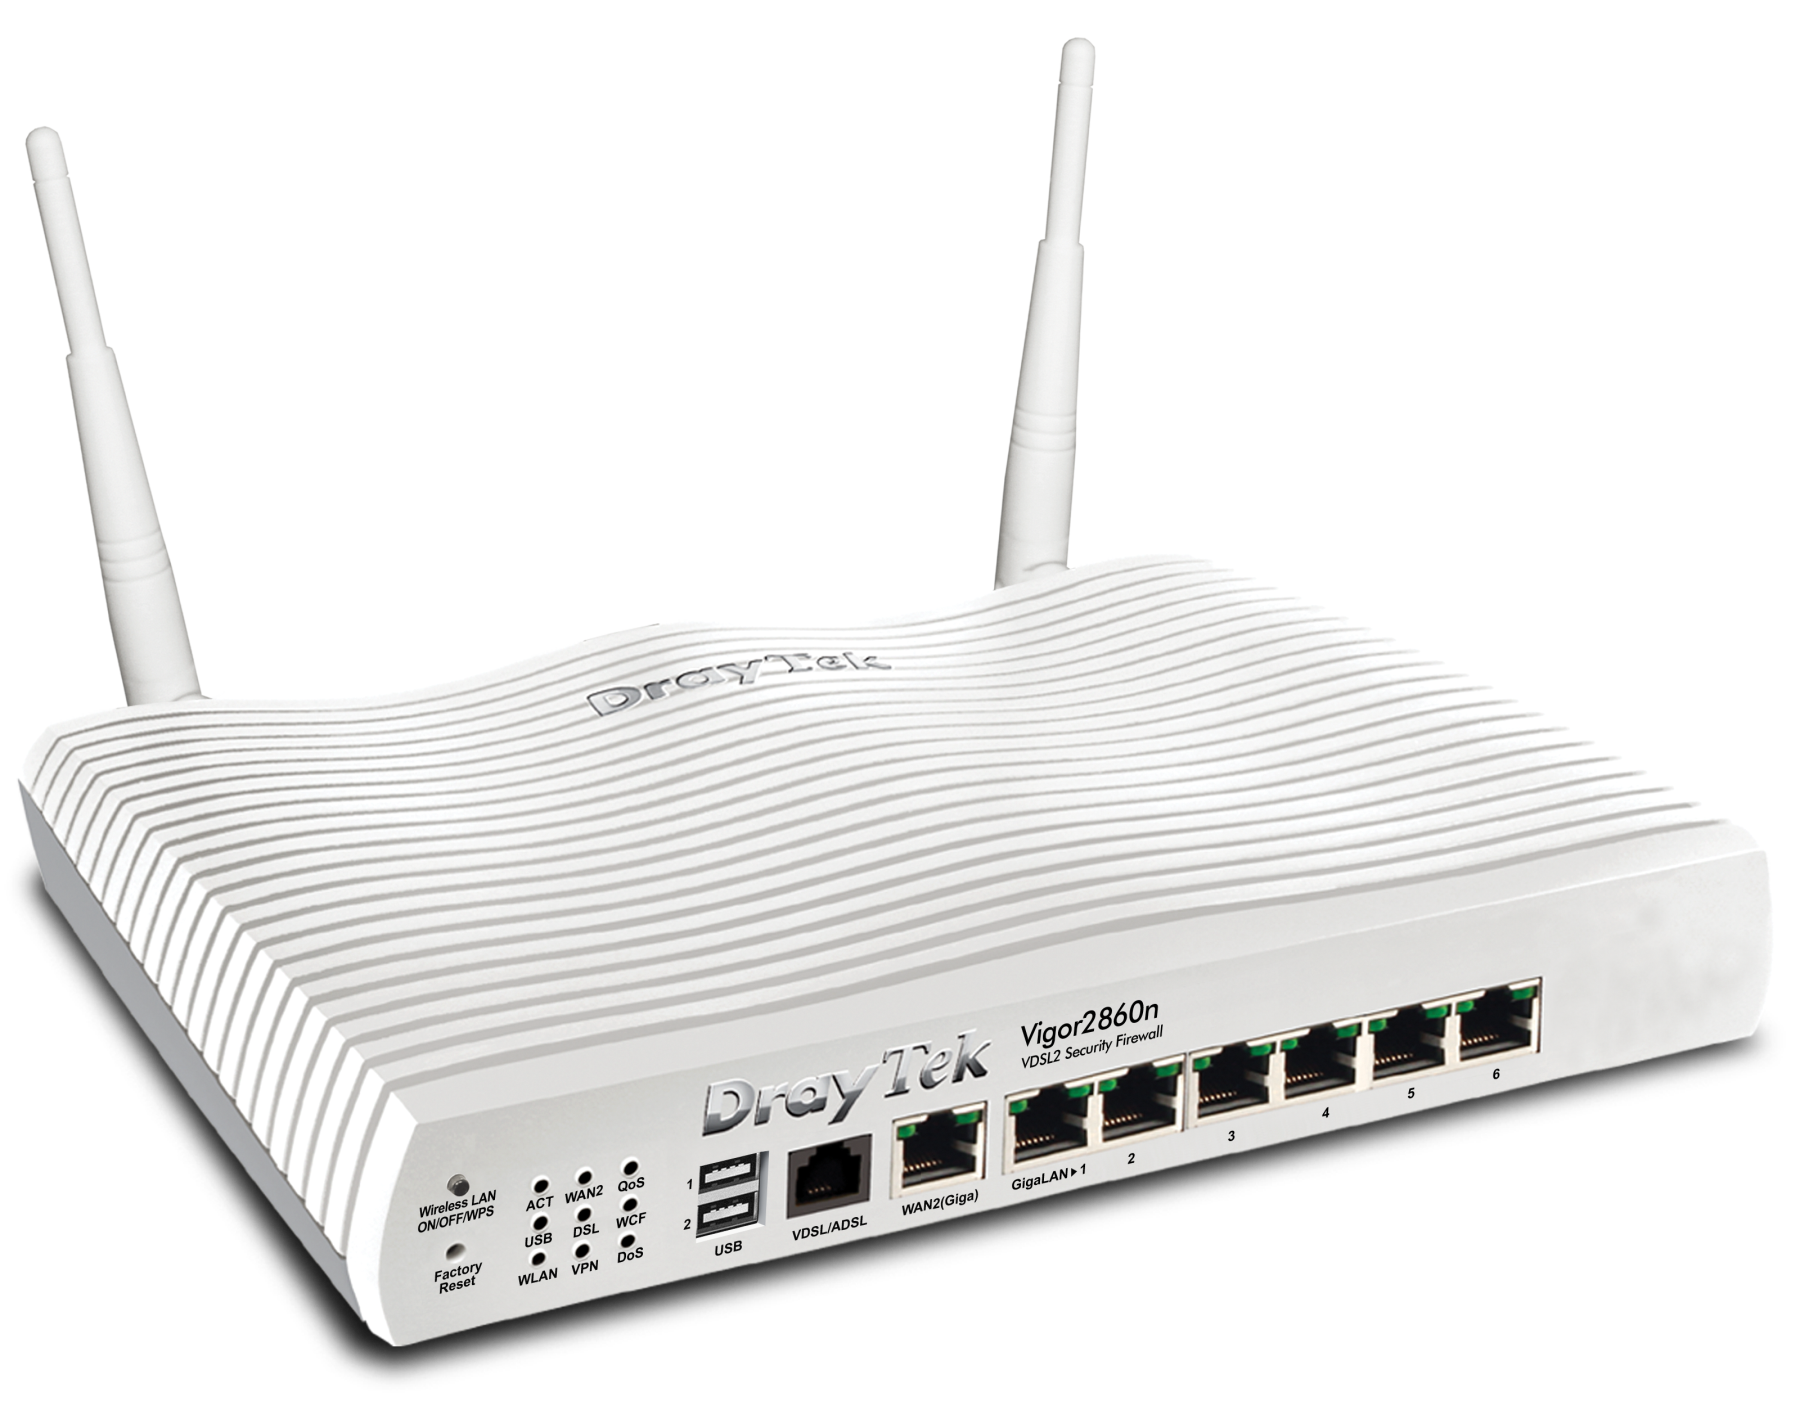 Draytek Vigor 2860N VDSL2 business VPN-endpoint router press image courtesy of Draytek UK